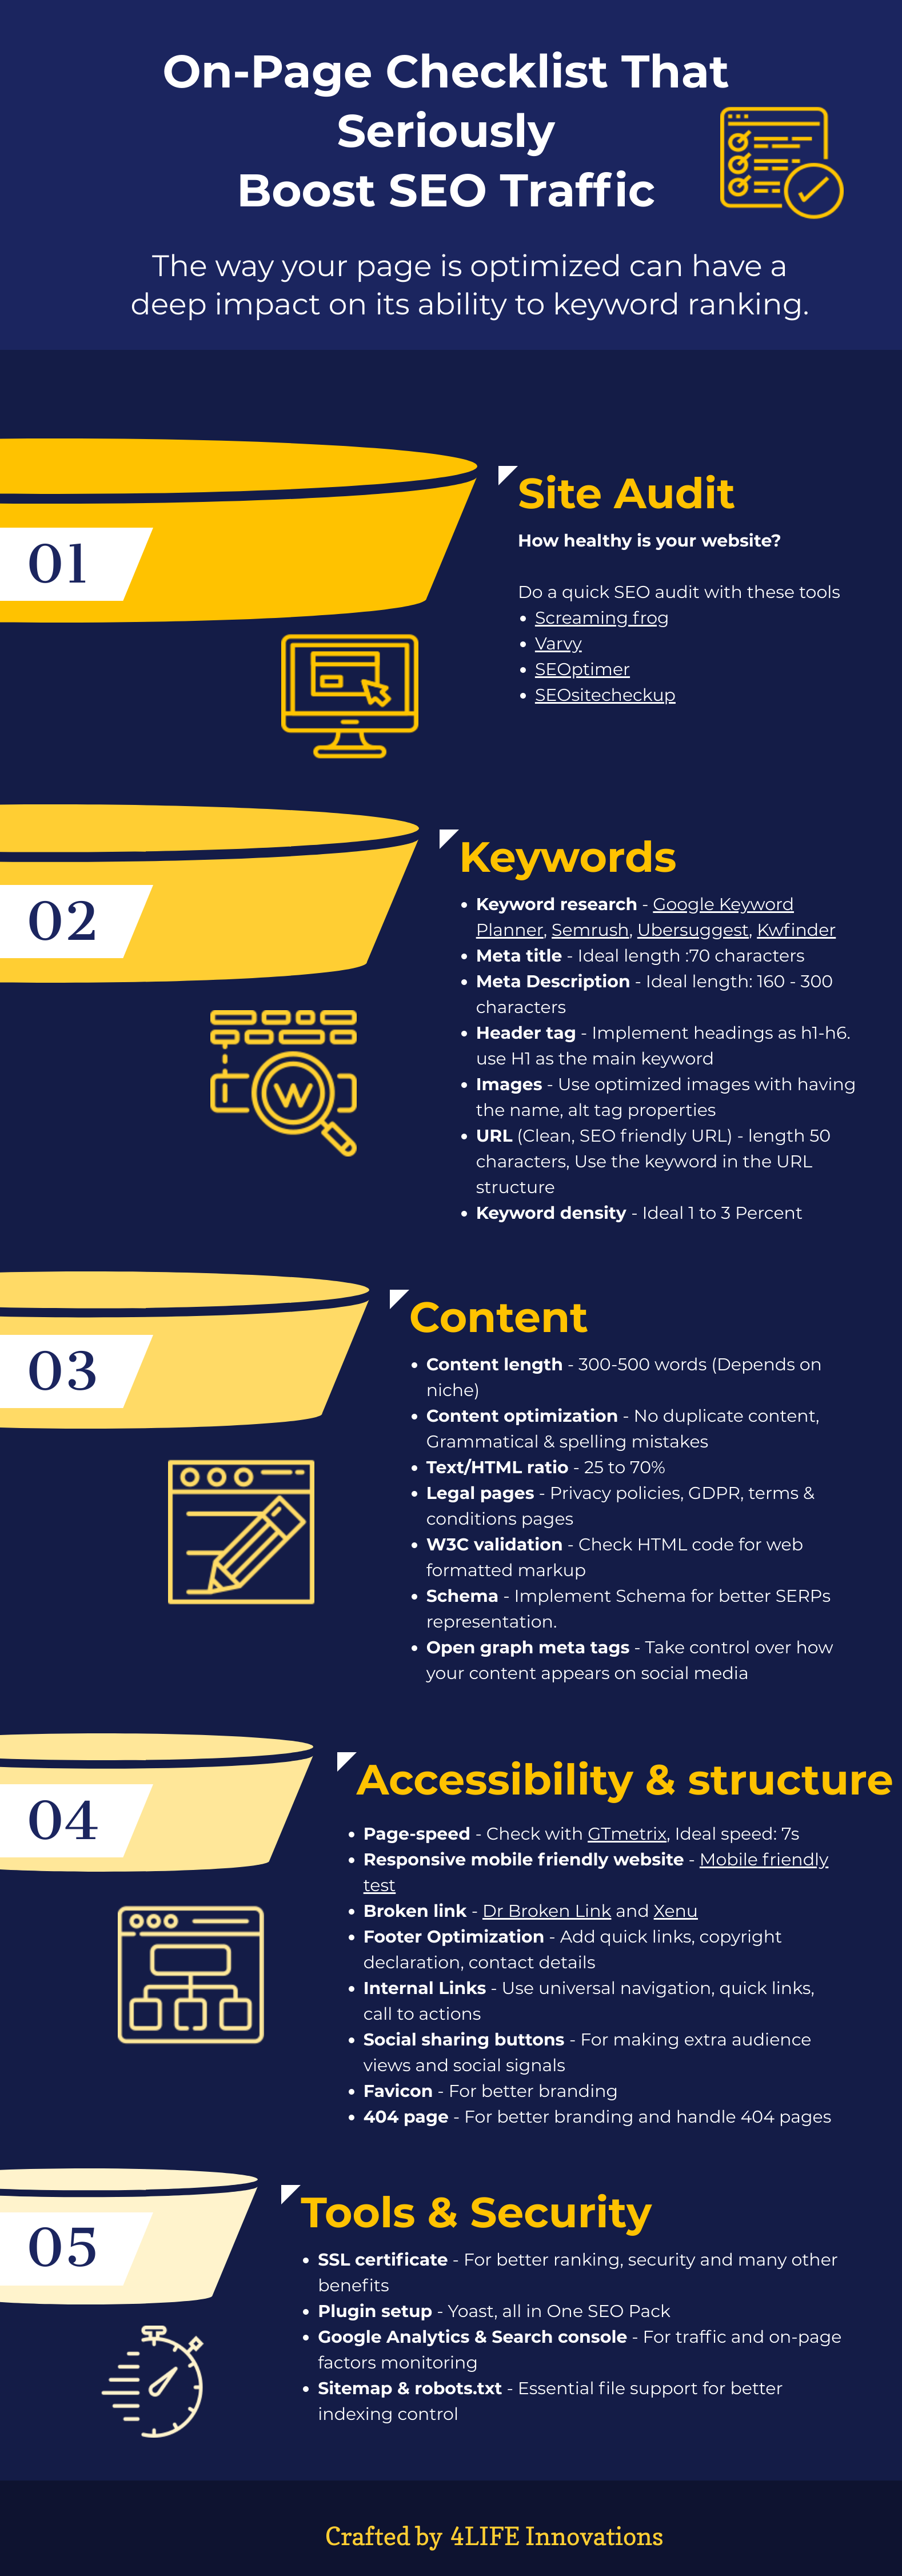 on-page seo checklist infographic